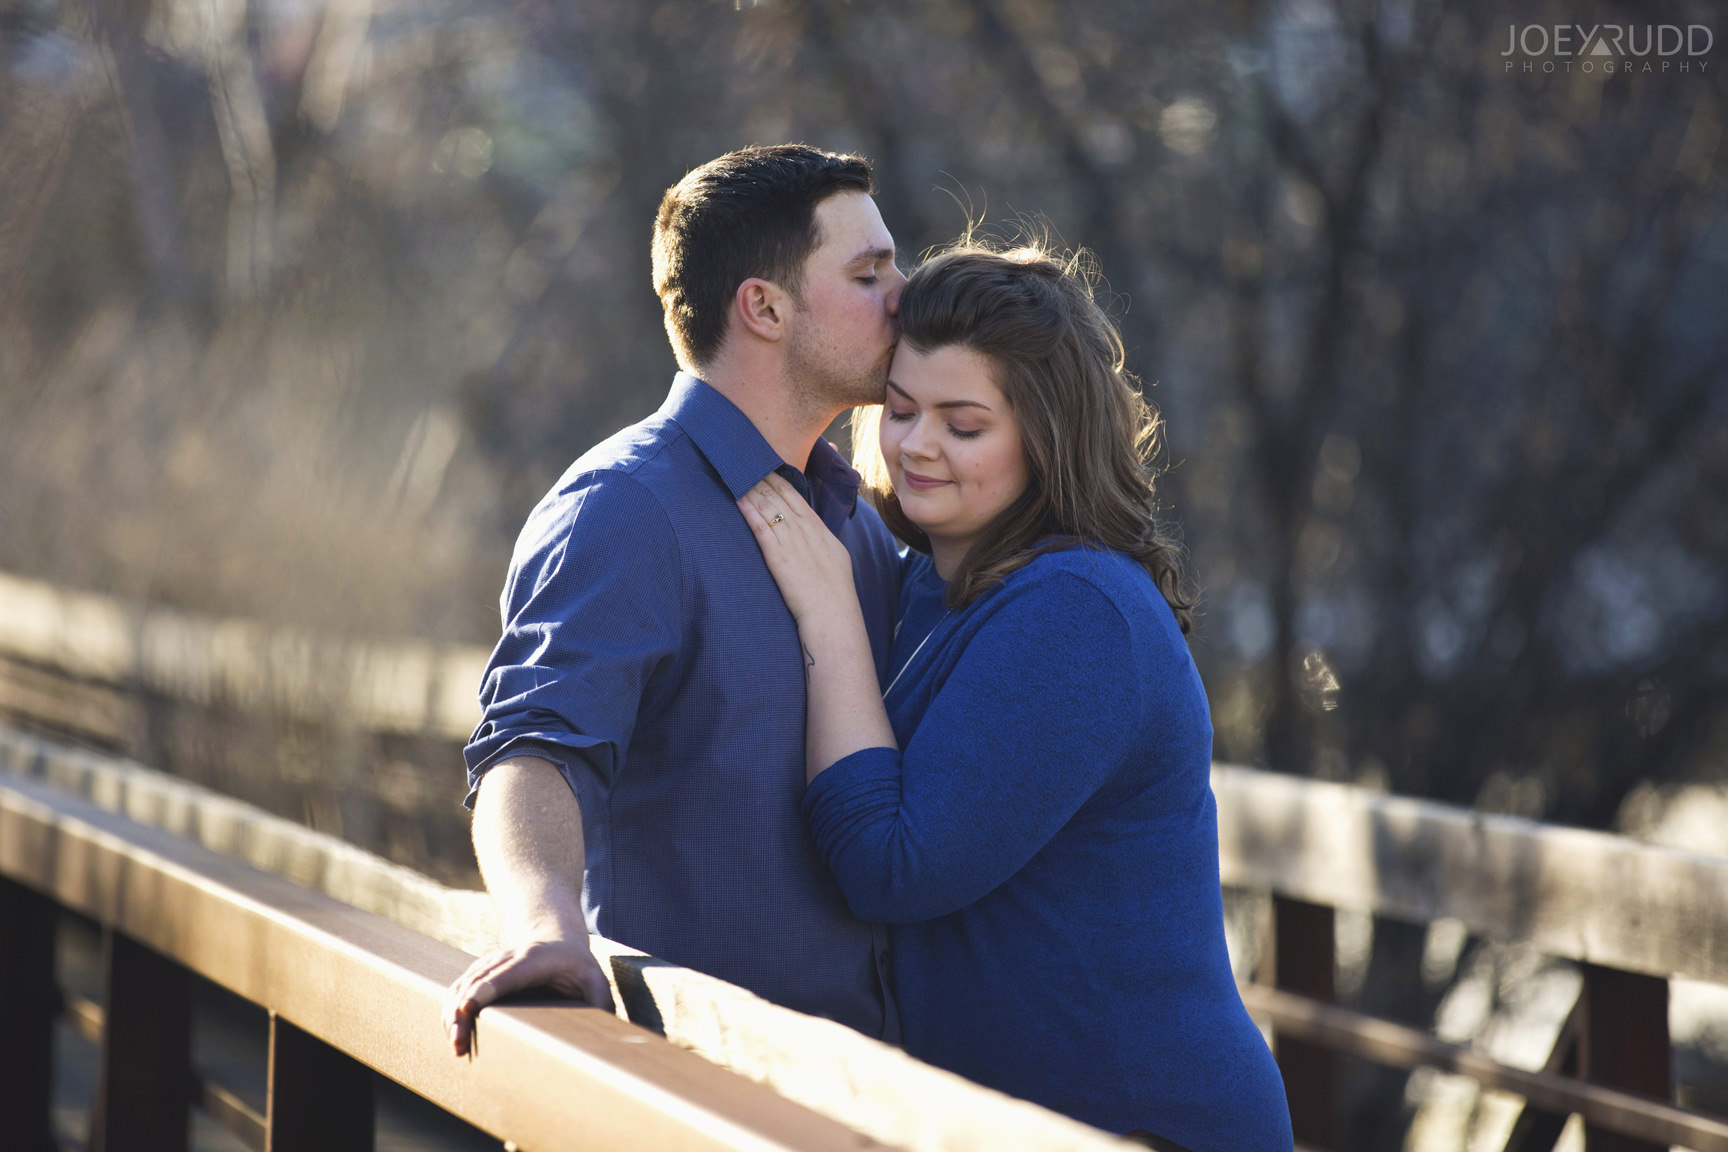 Almonte engagement photography by ottawa wedding photographer joey rudd photography posing